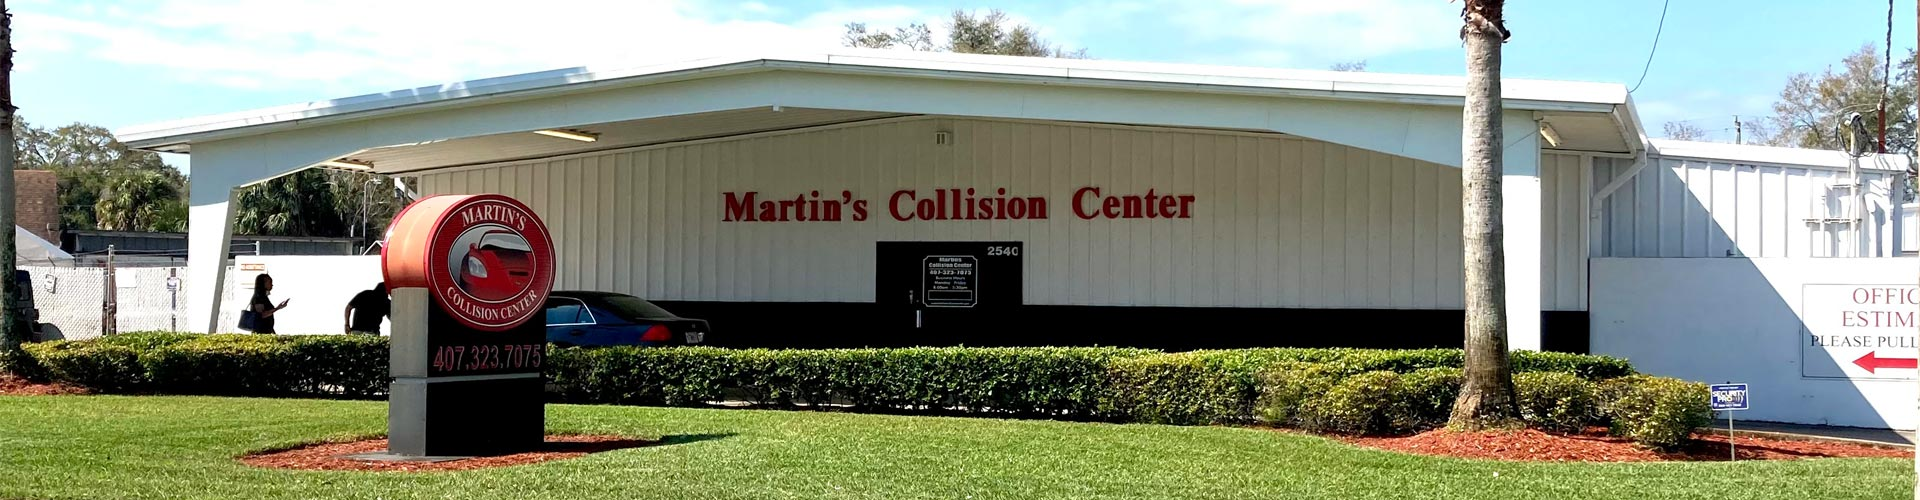 Martin's Collision Center building